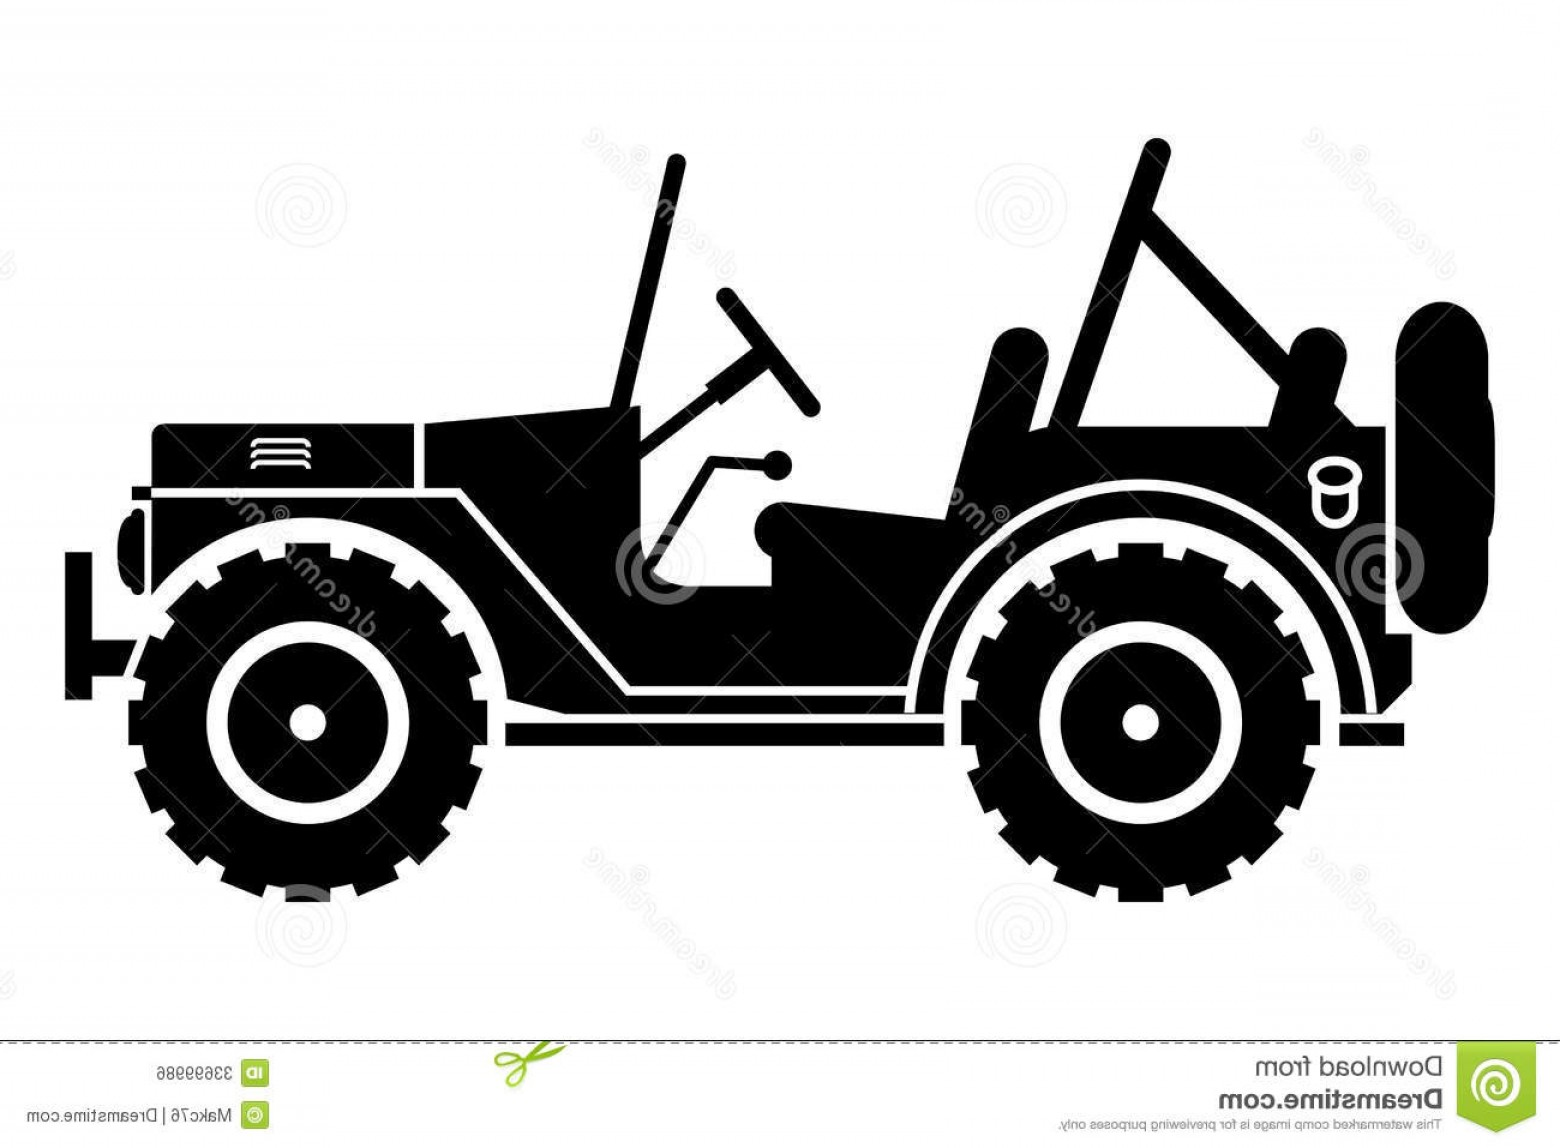 Royalty free stock image. Jeep clipart side view